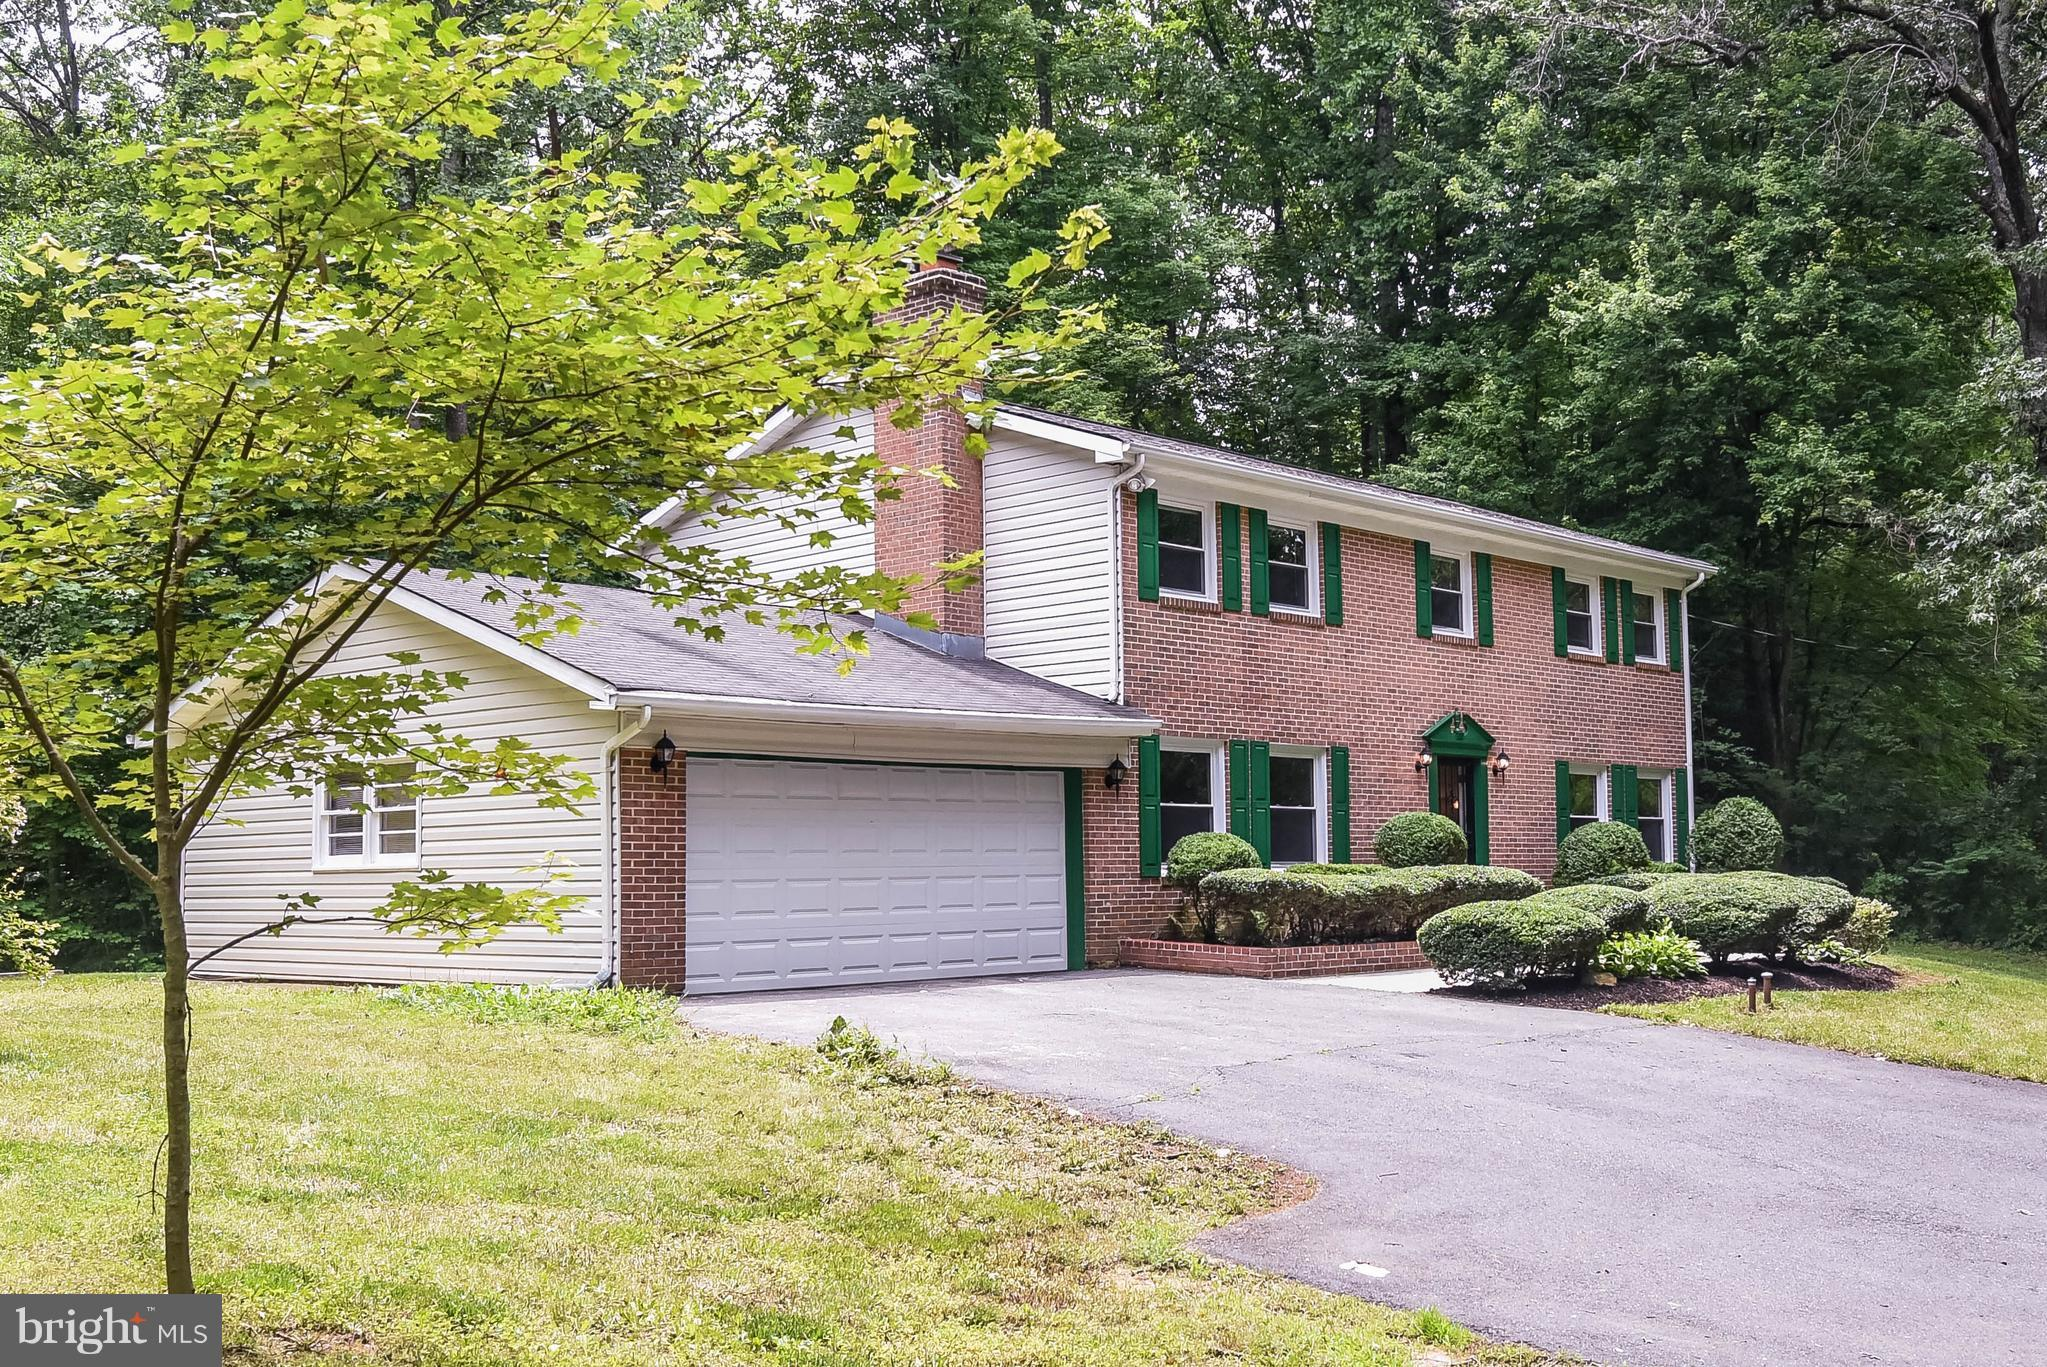 Living is easy in this impressive, generously spacious residence in Oak Hill. Perfectly situated at the end of a quiet road this home offers 4 bedrooms, 2.5 baths and all in 2200 sq ft of living space on a .7 acre lot.  Move right in.  No need to paint, this home has new paint and new carpet throughout. No homes in the area can compete with this brick front colonial. Get out to see it right away!